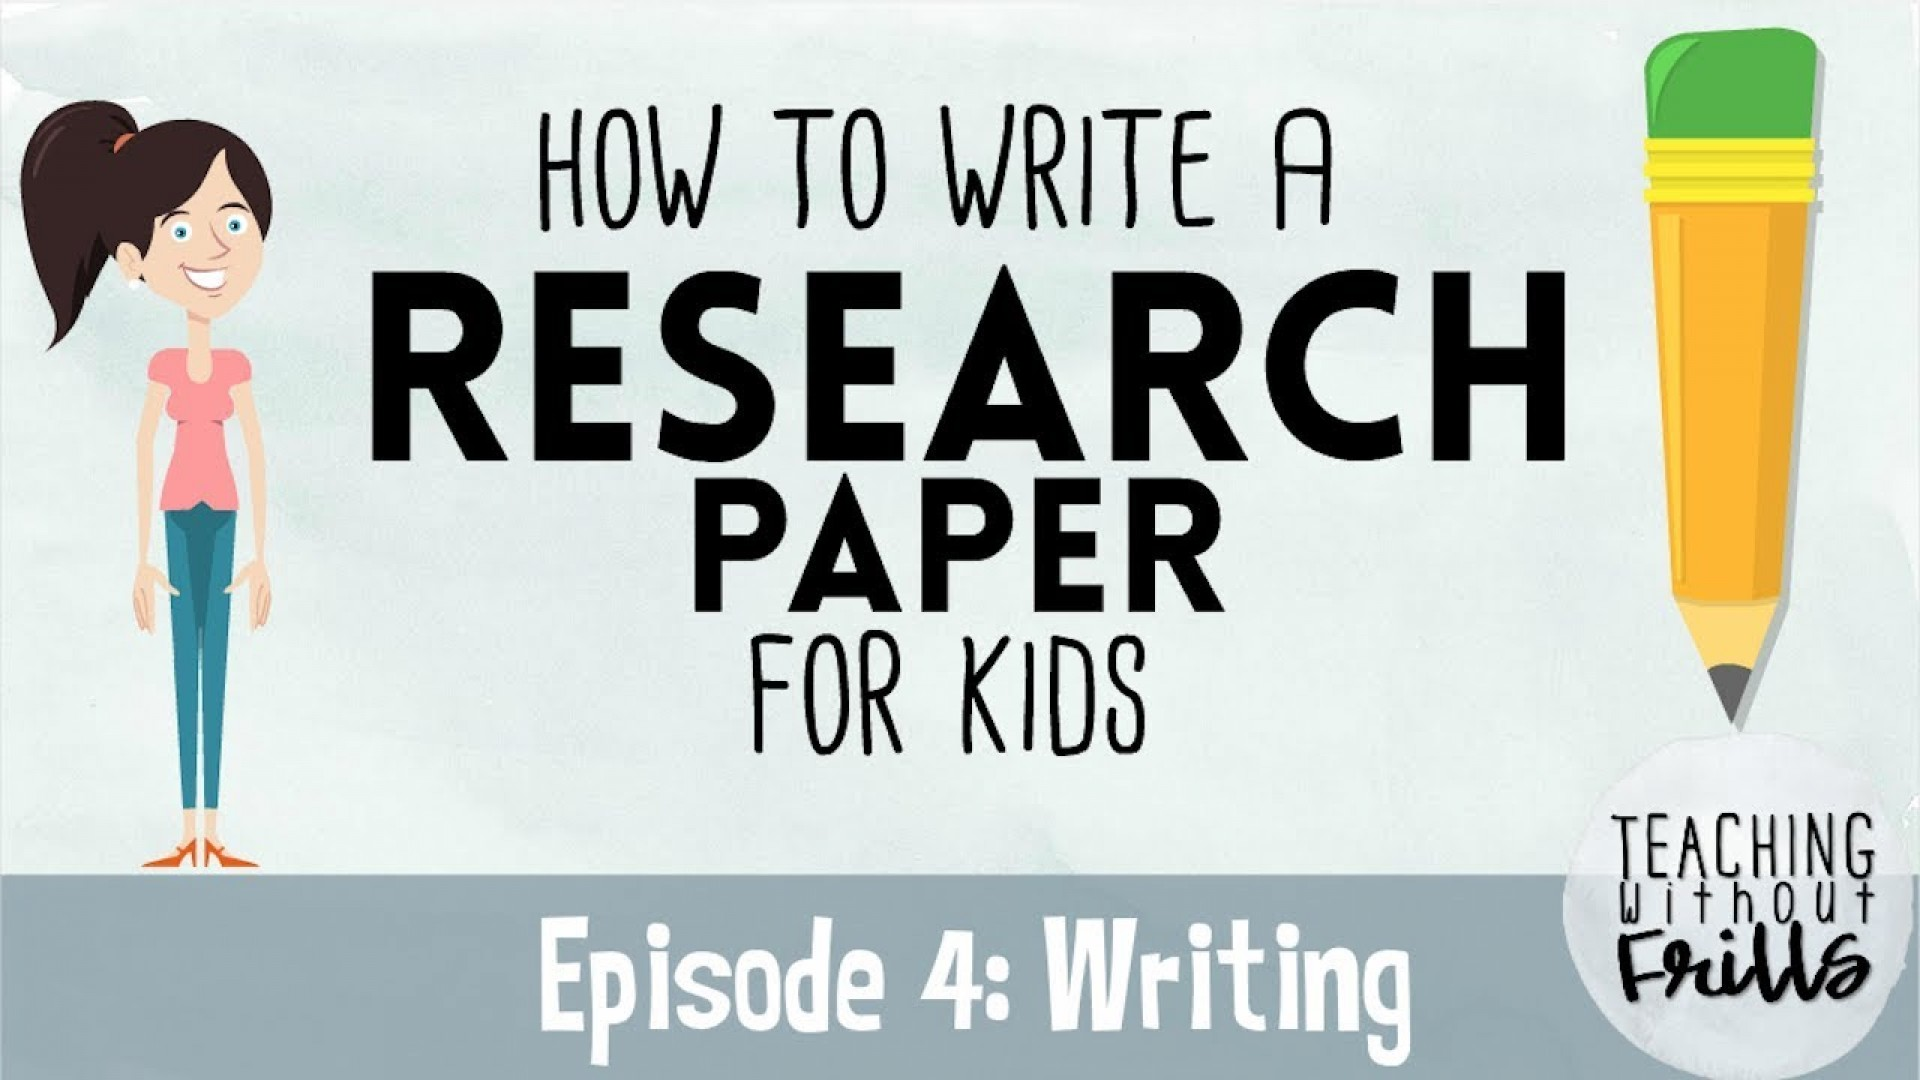 024 Research Paper How To Write Good Youtube Remarkable A In Apa 1920